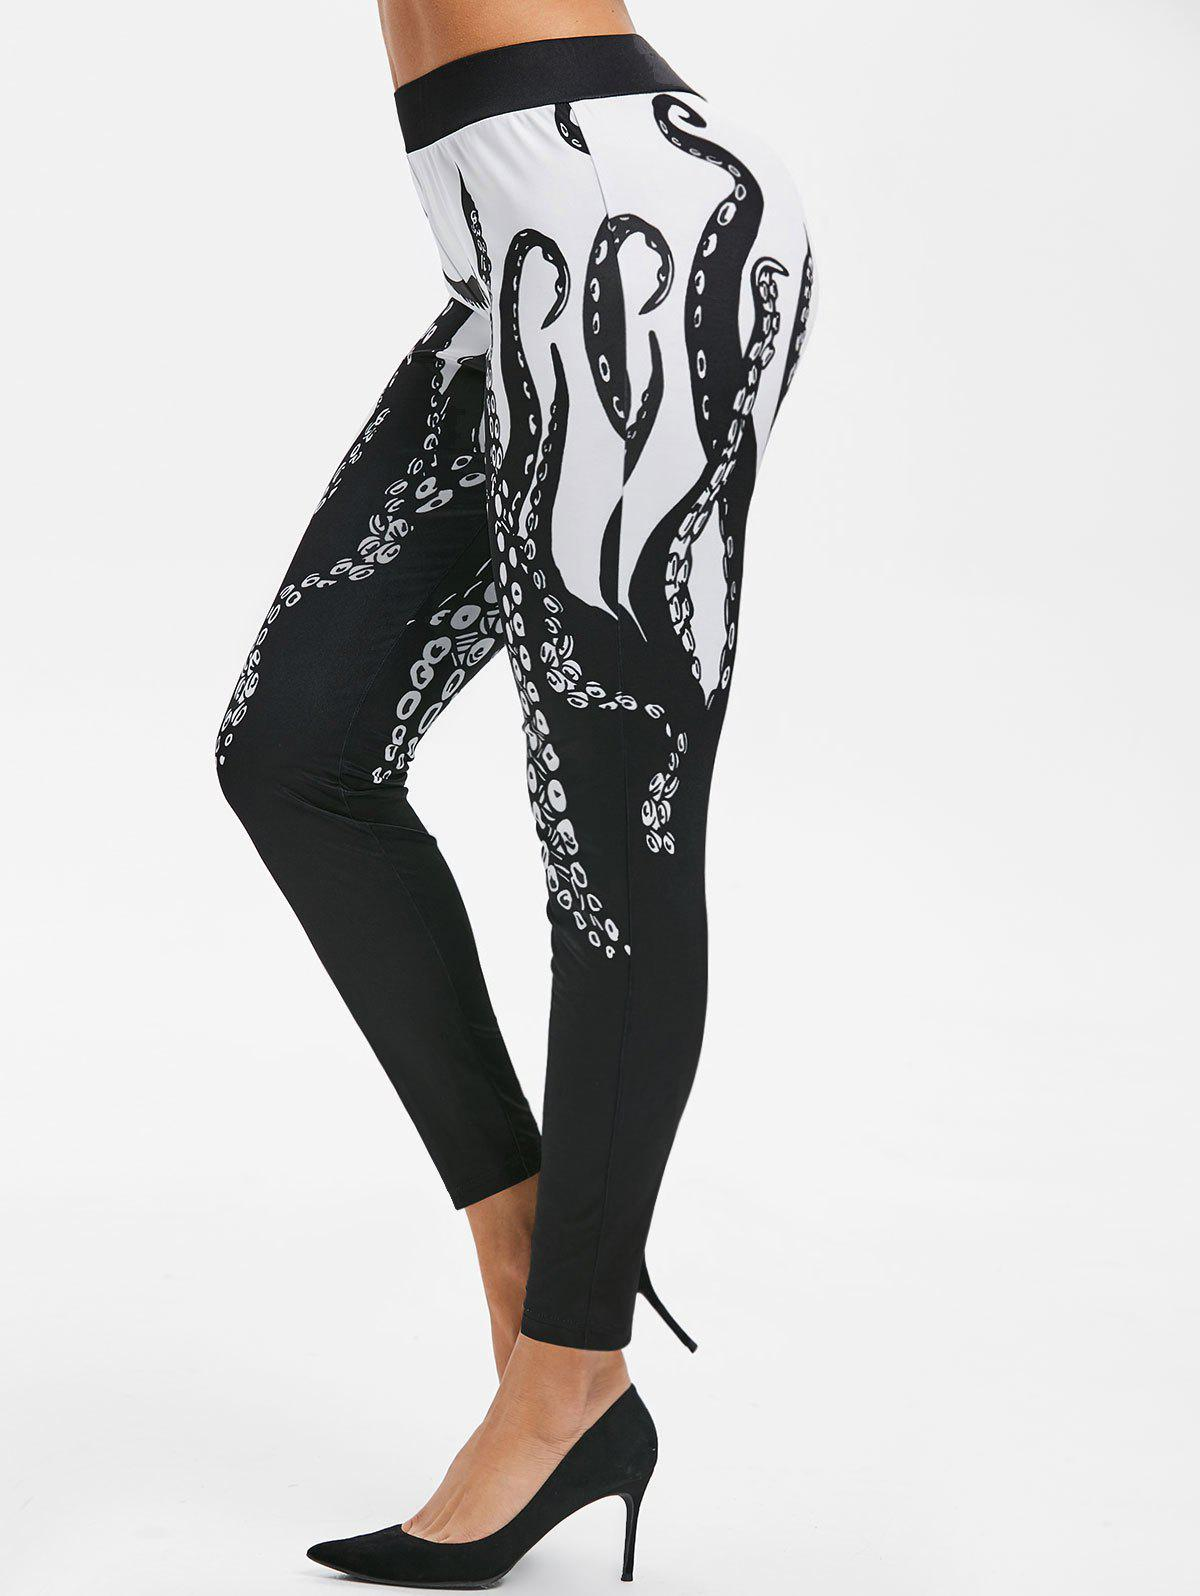 Octopus Print High Waisted Skinny Pants - BLACK 3XL